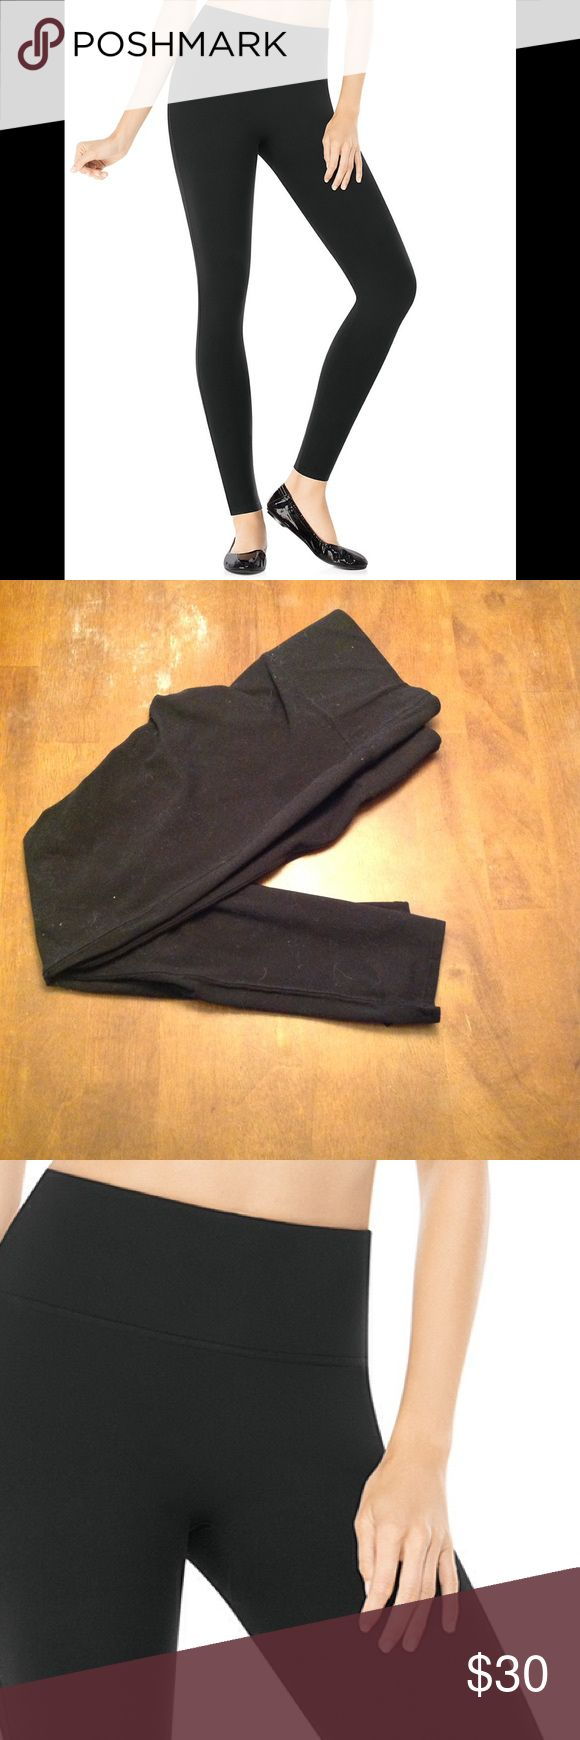 Spanx ready to wow leggings Built in tummy support panel. Best leggings I've ever owned. Some minor fabric pilling. Otherwise in great condition. SPANX Pants Leggings